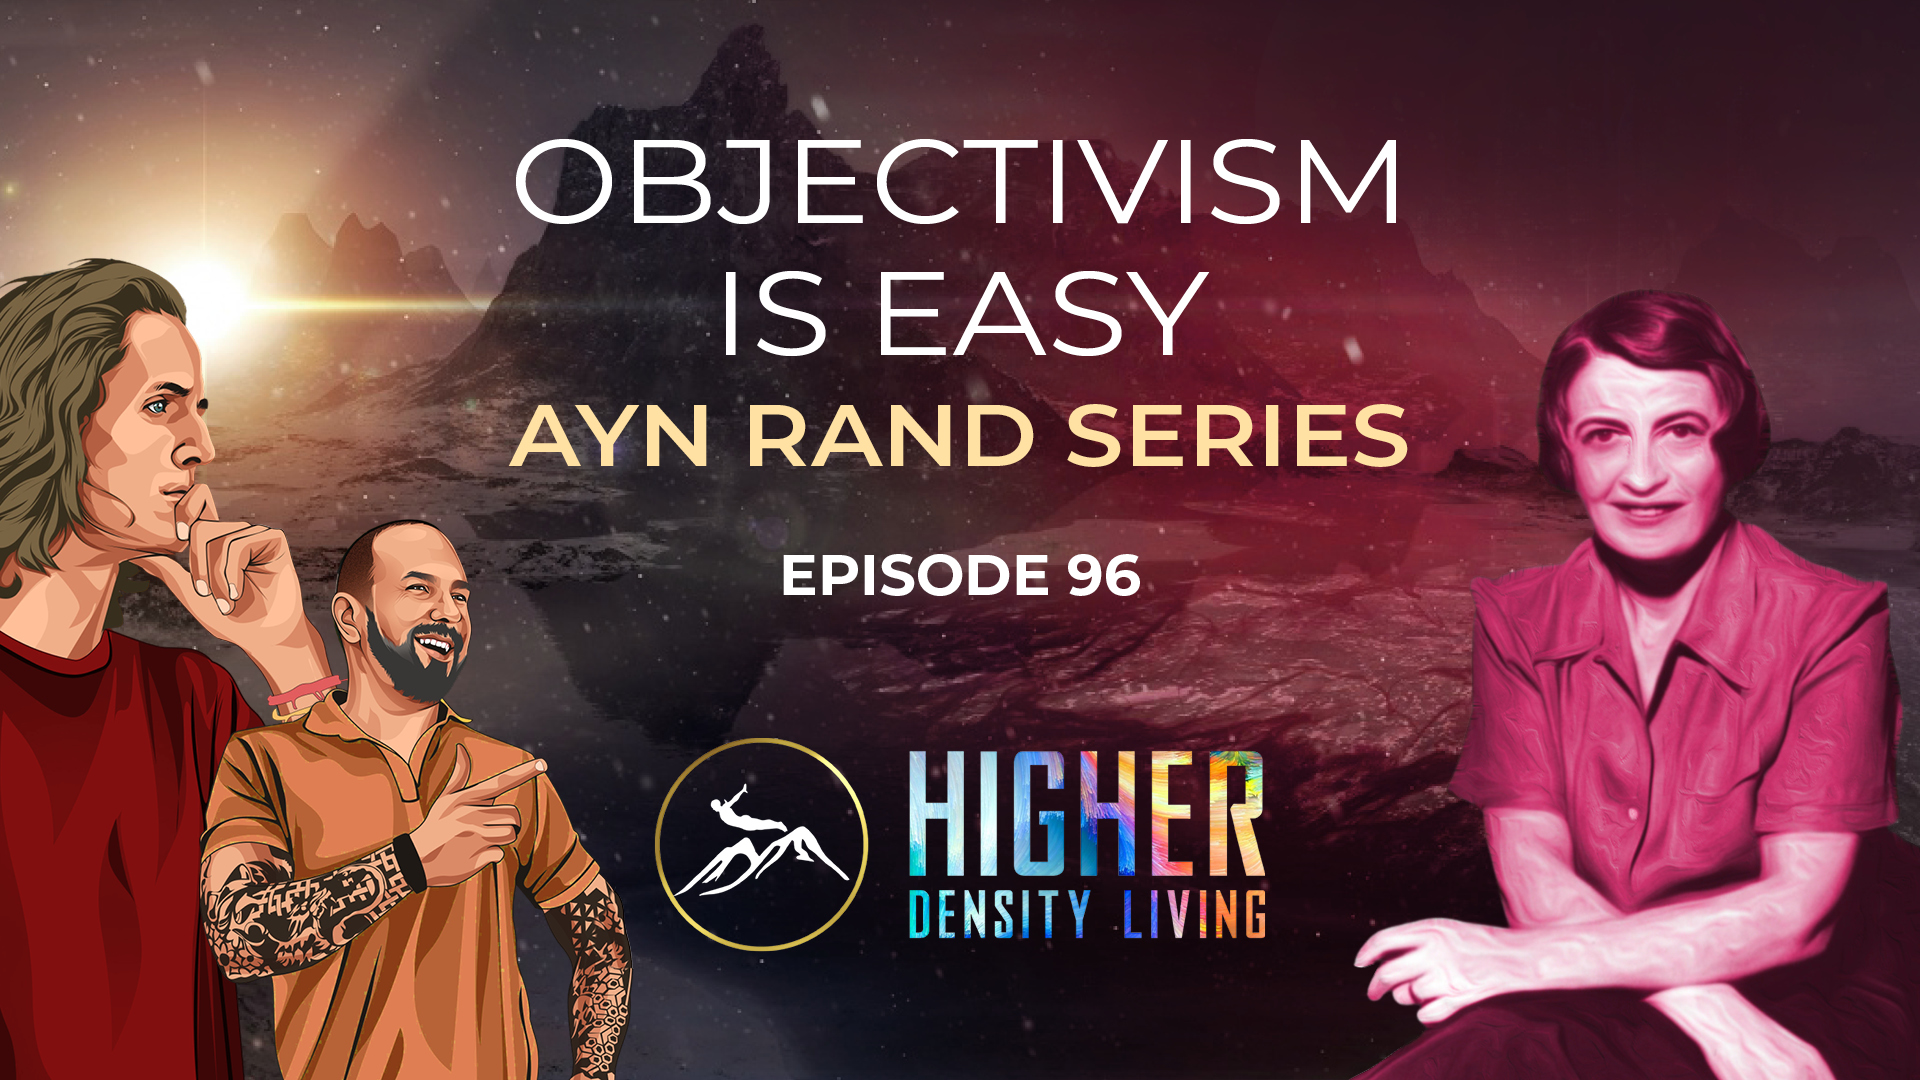 Objectivism Is Easy - Ayn Rand Series